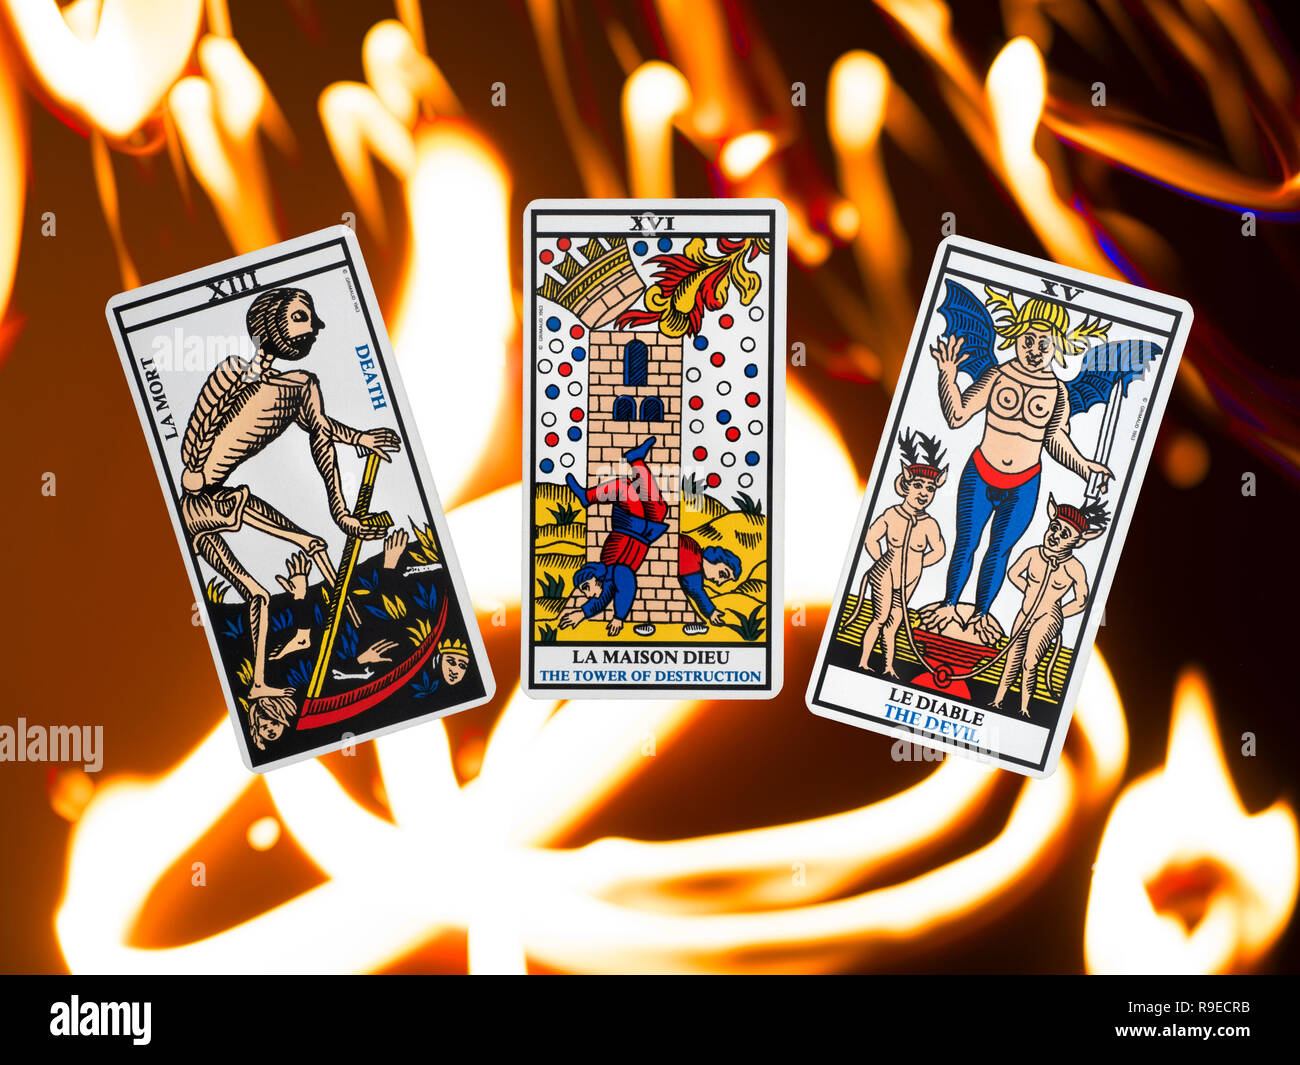 Tower, Devil and Death from a tarot deck of the Tarot de Marseille, floating on a burning fire background - Stock Image